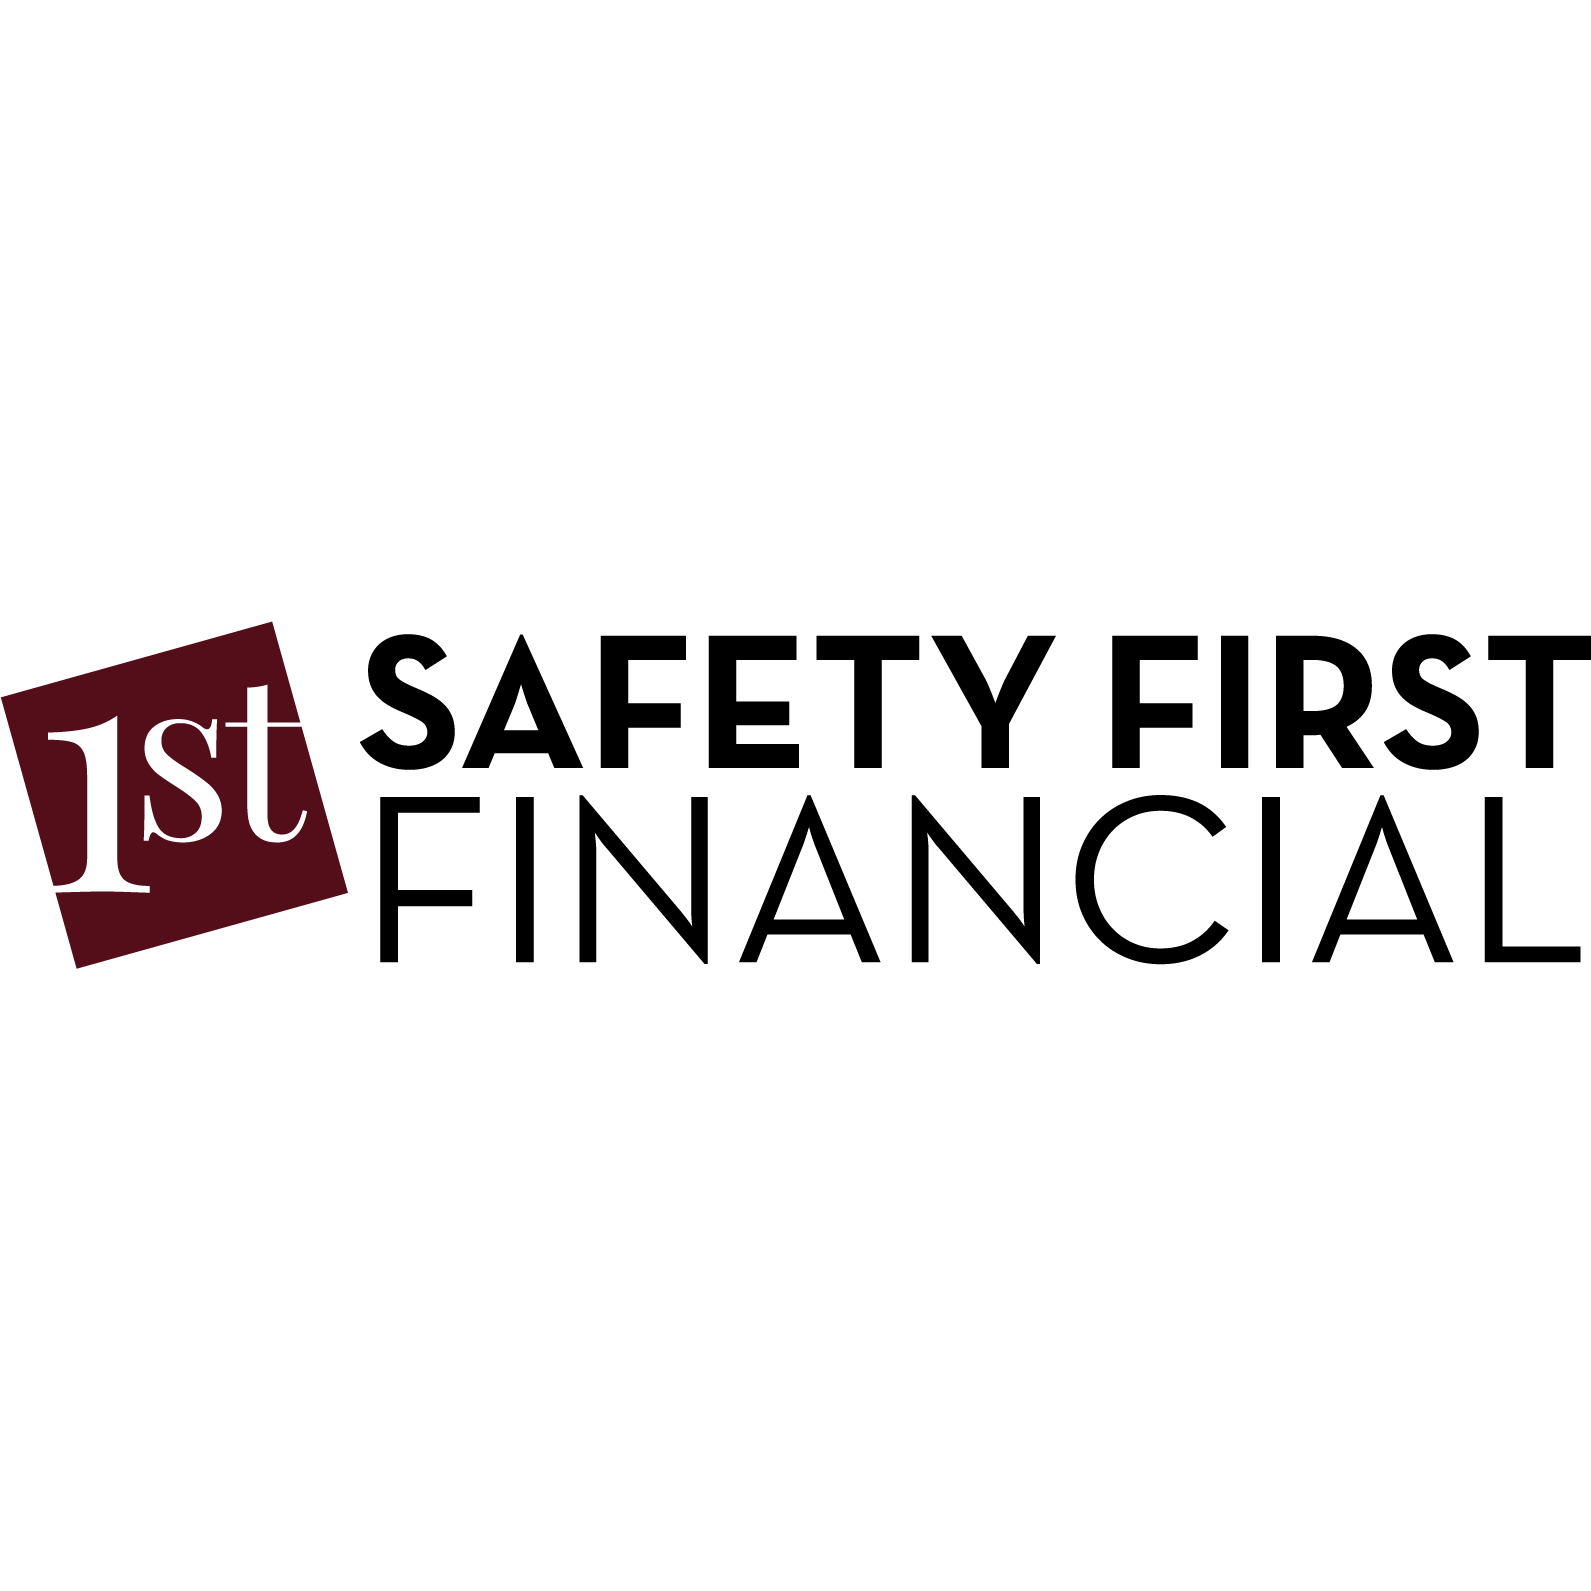 Safety First Financial